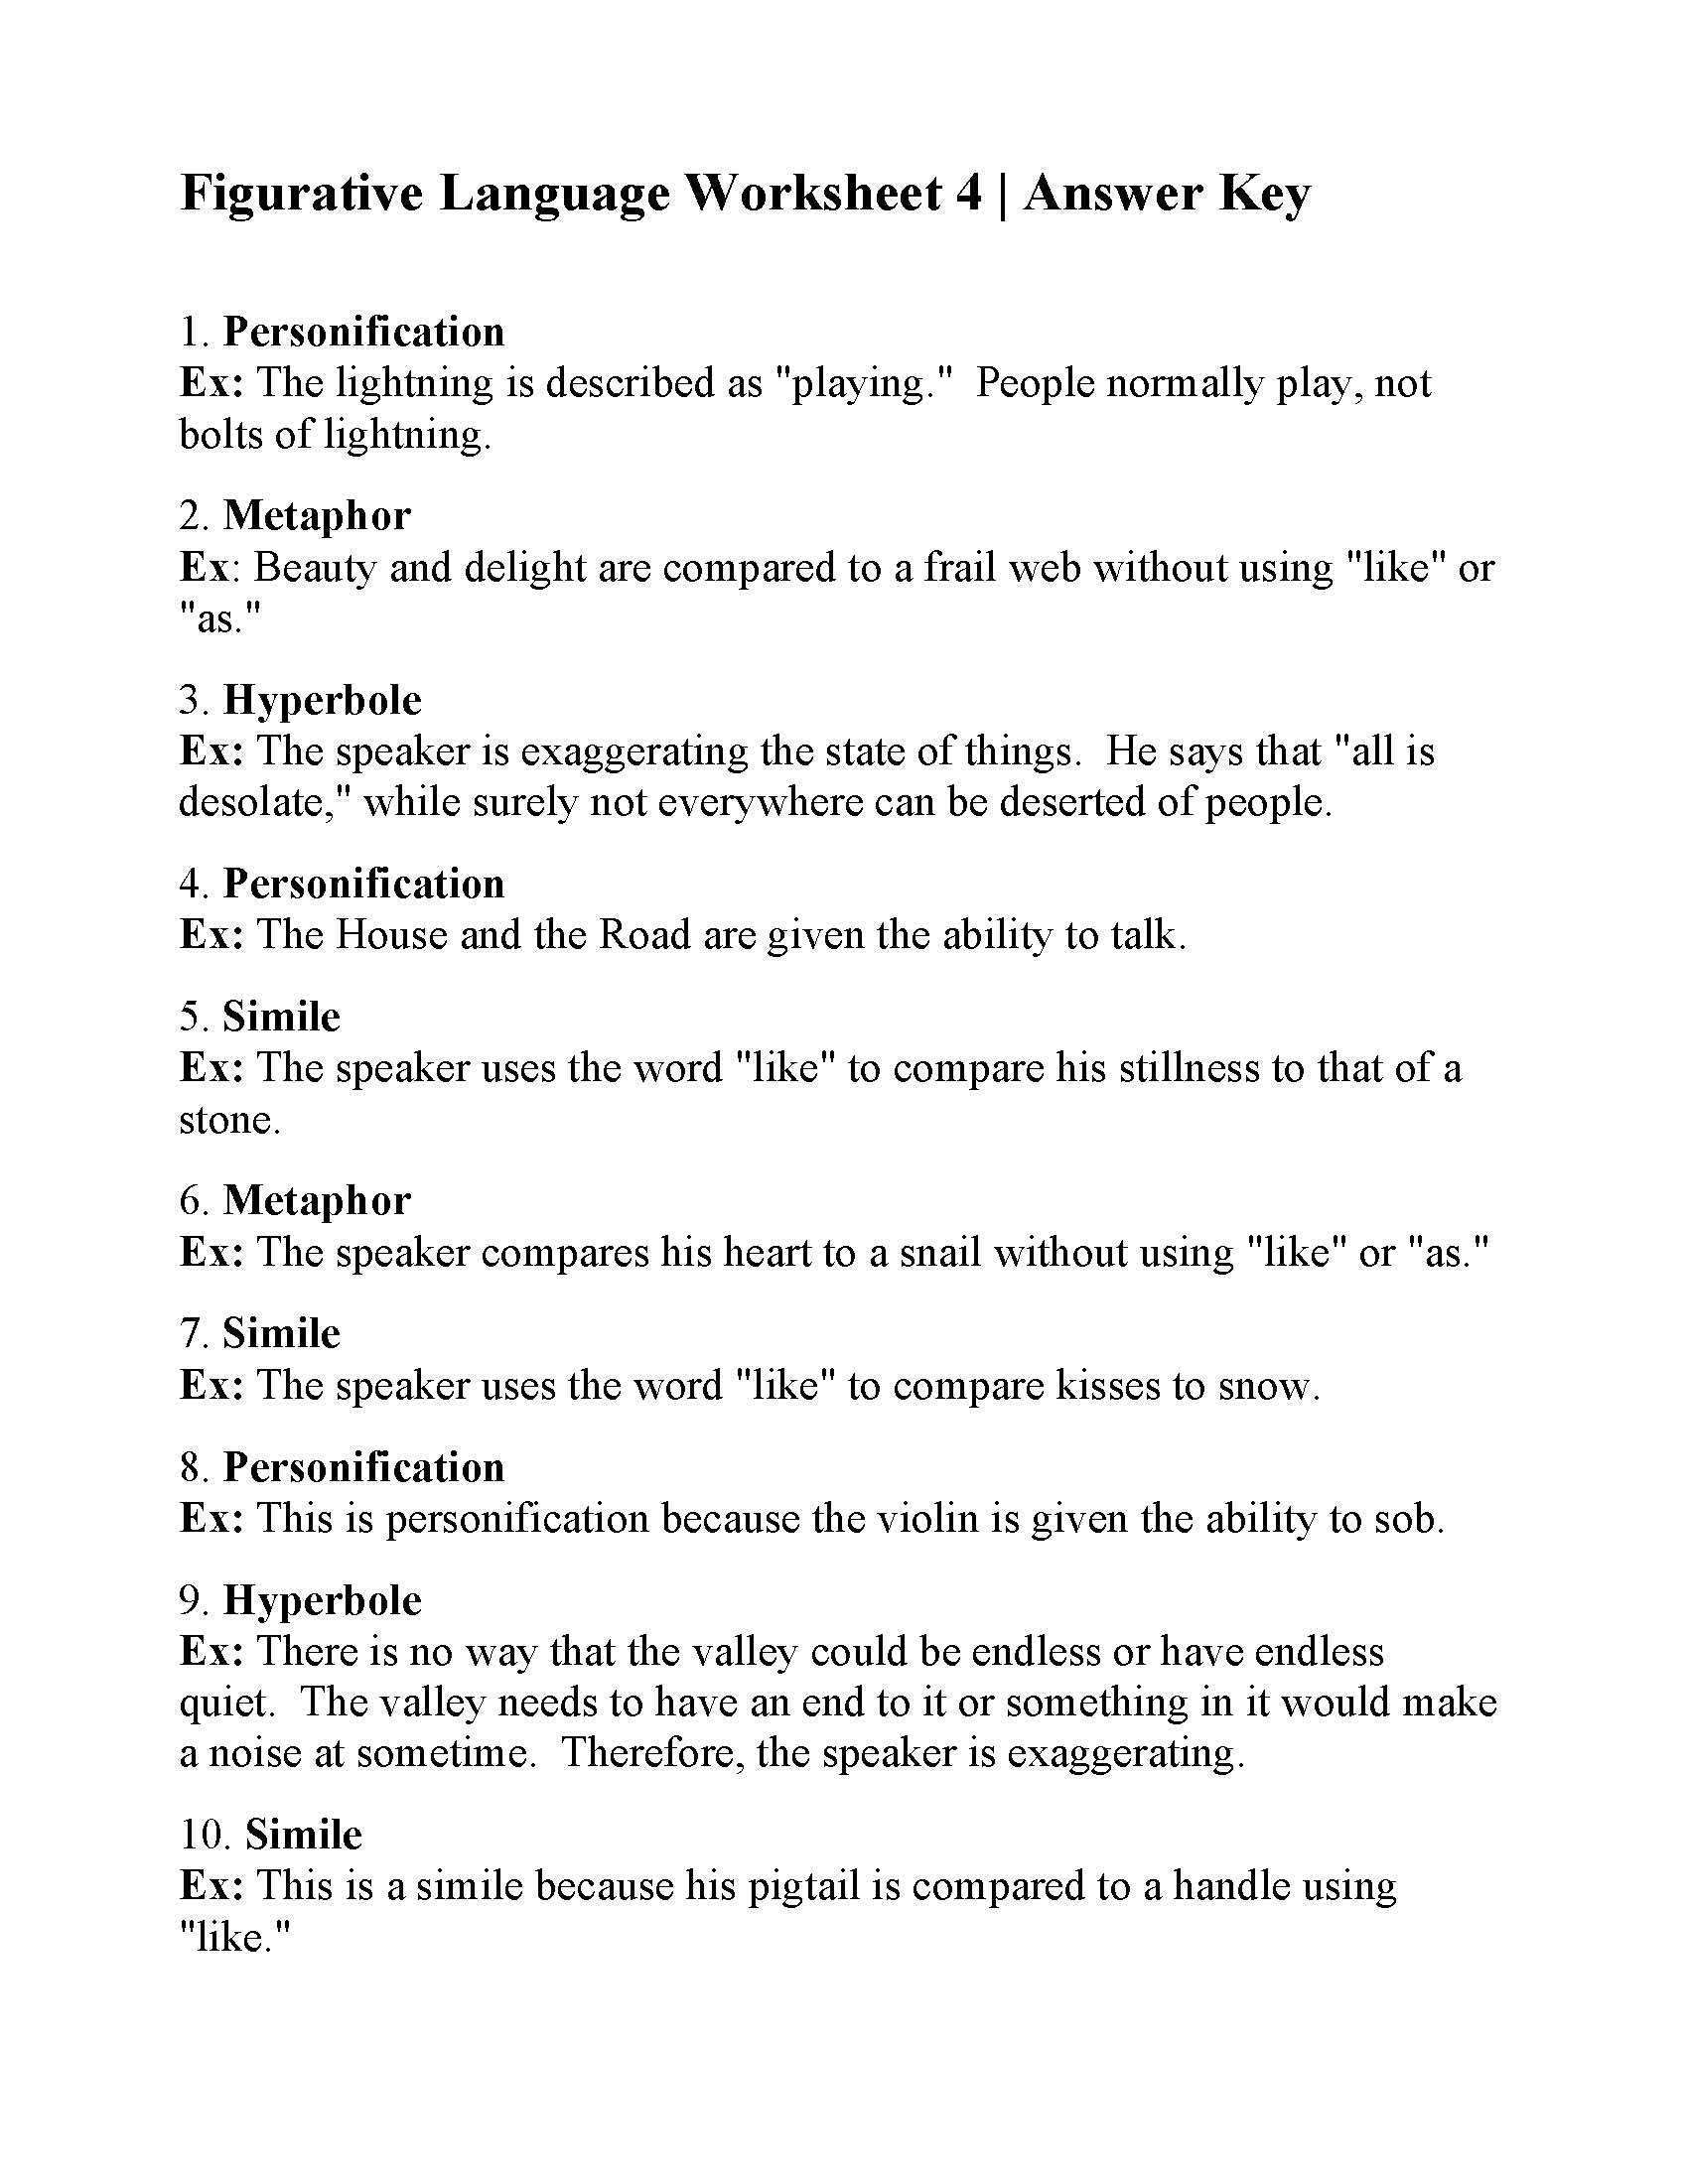 Figurative Language Worksheet 4